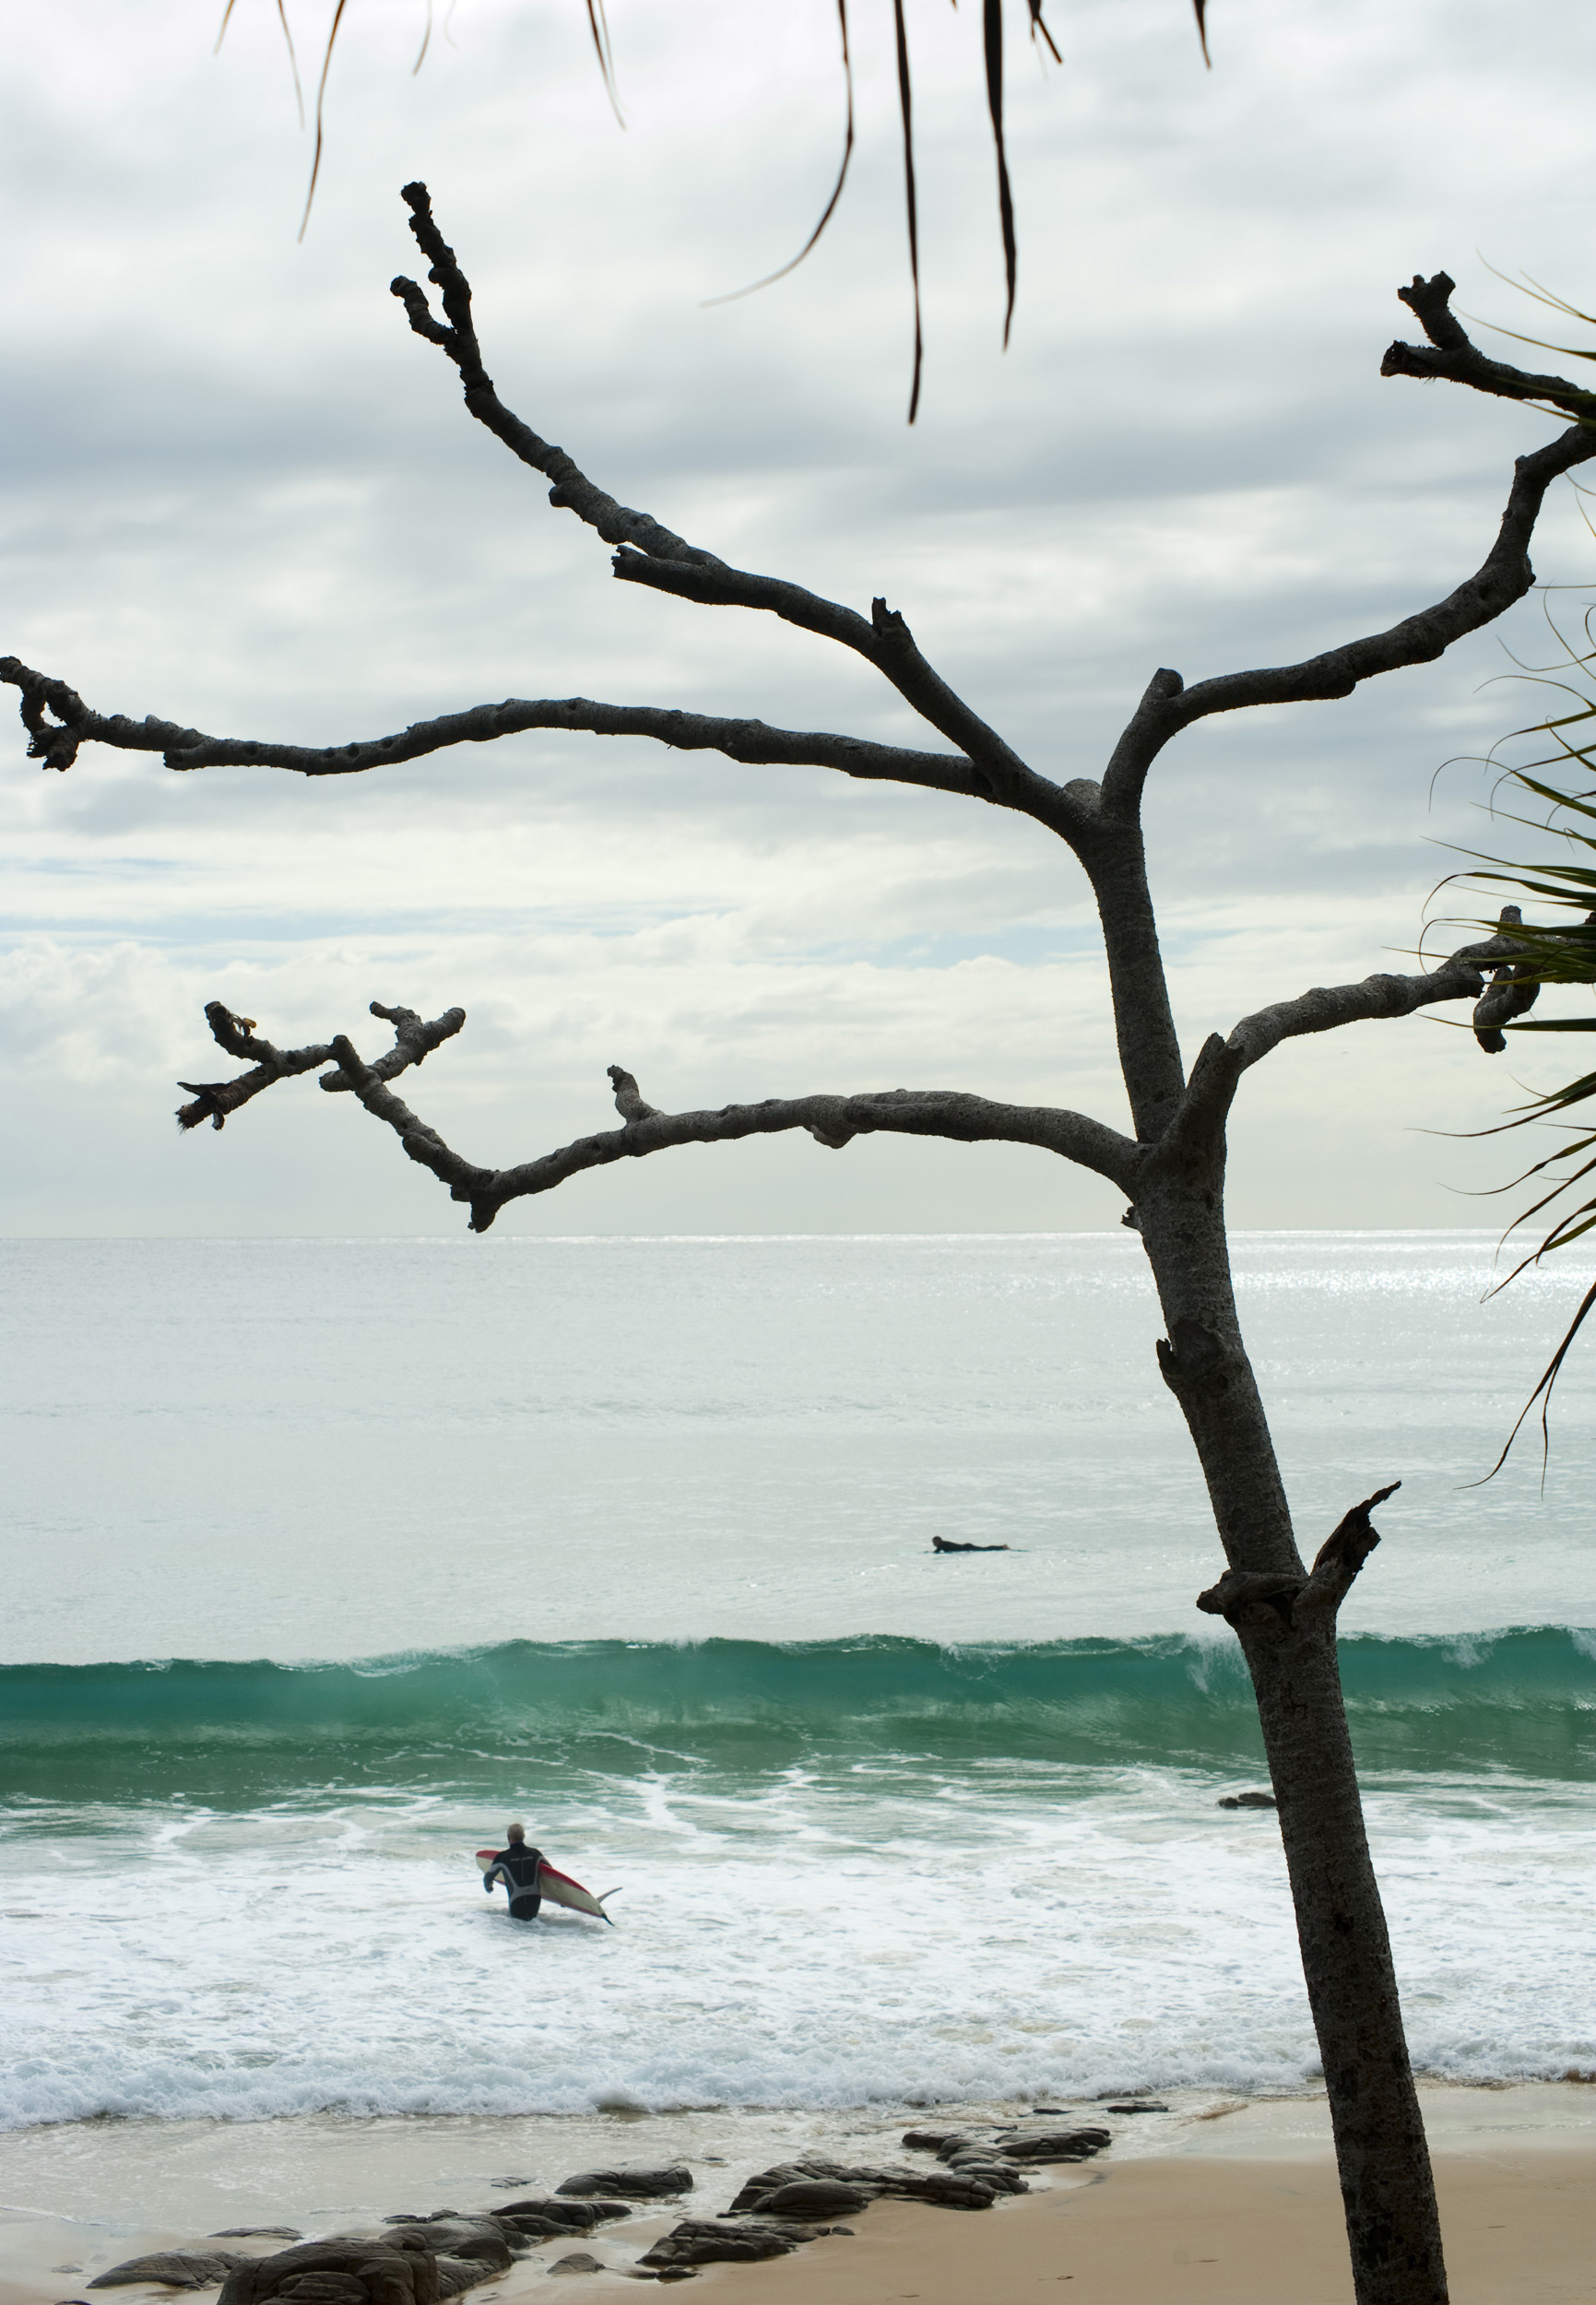 Lone surfer at Noosa beach, Queensland, Australia with a tea tree in the foreground